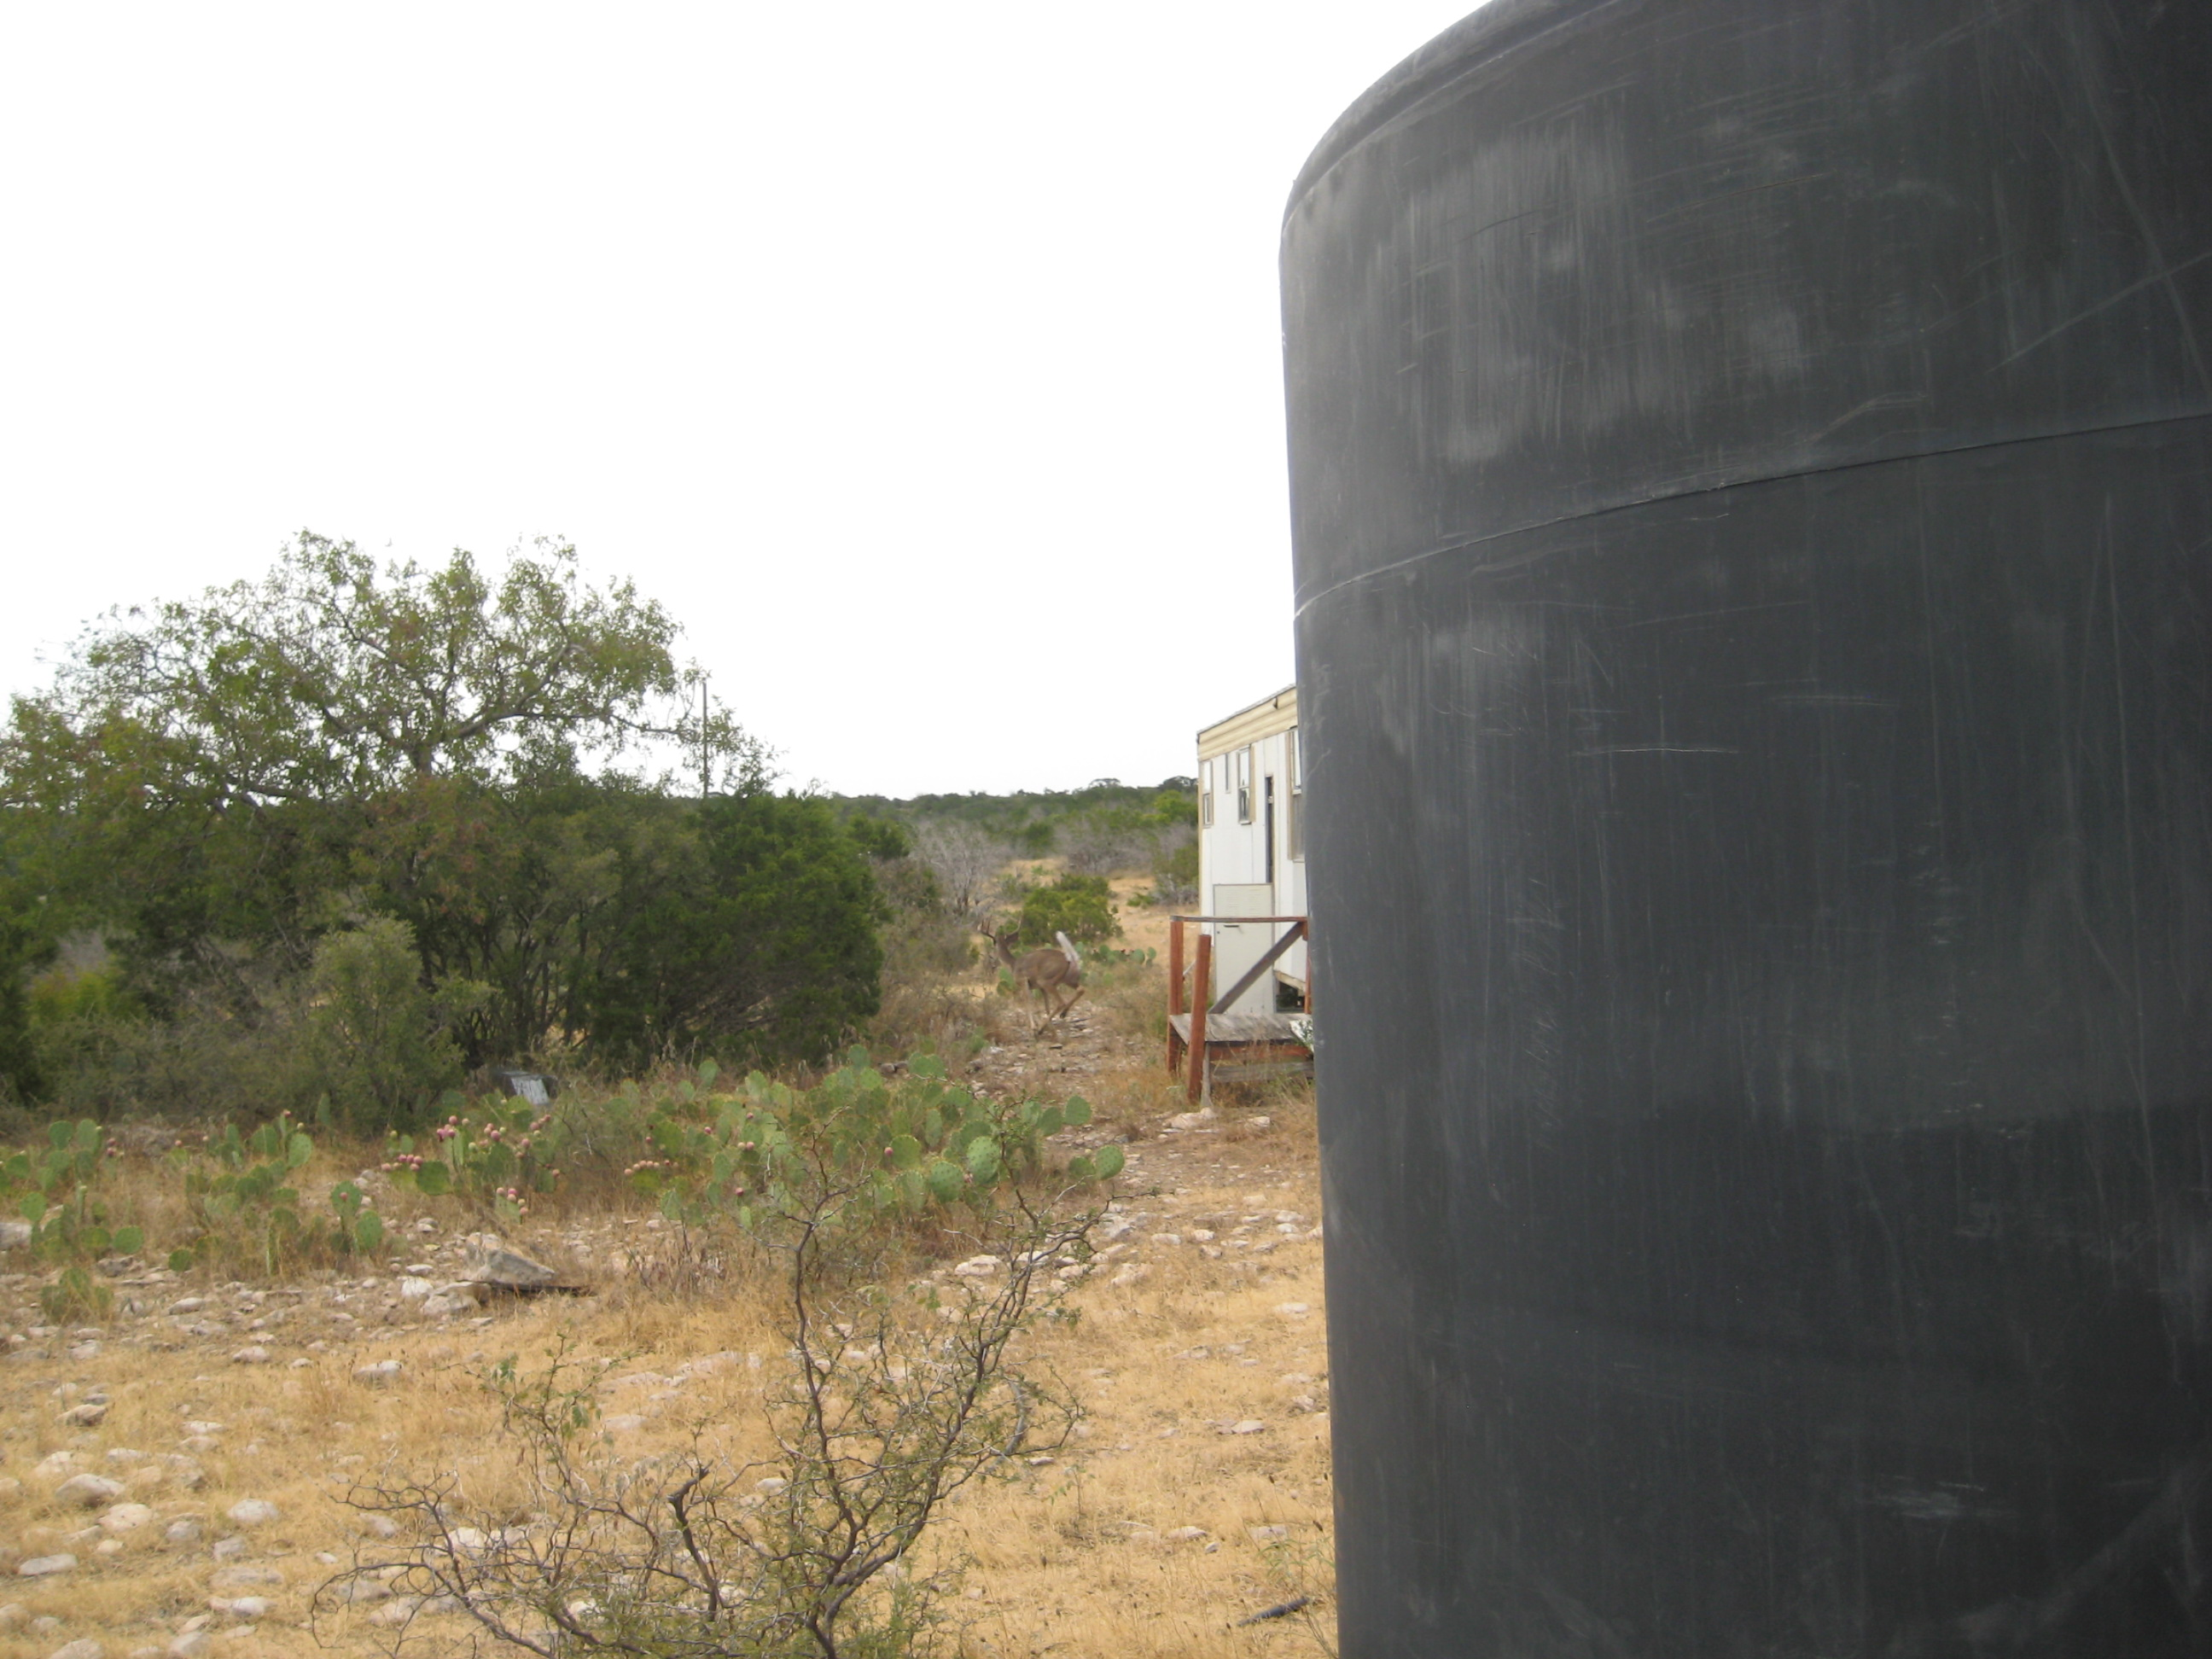 3000 Gallon Camp Water Storage